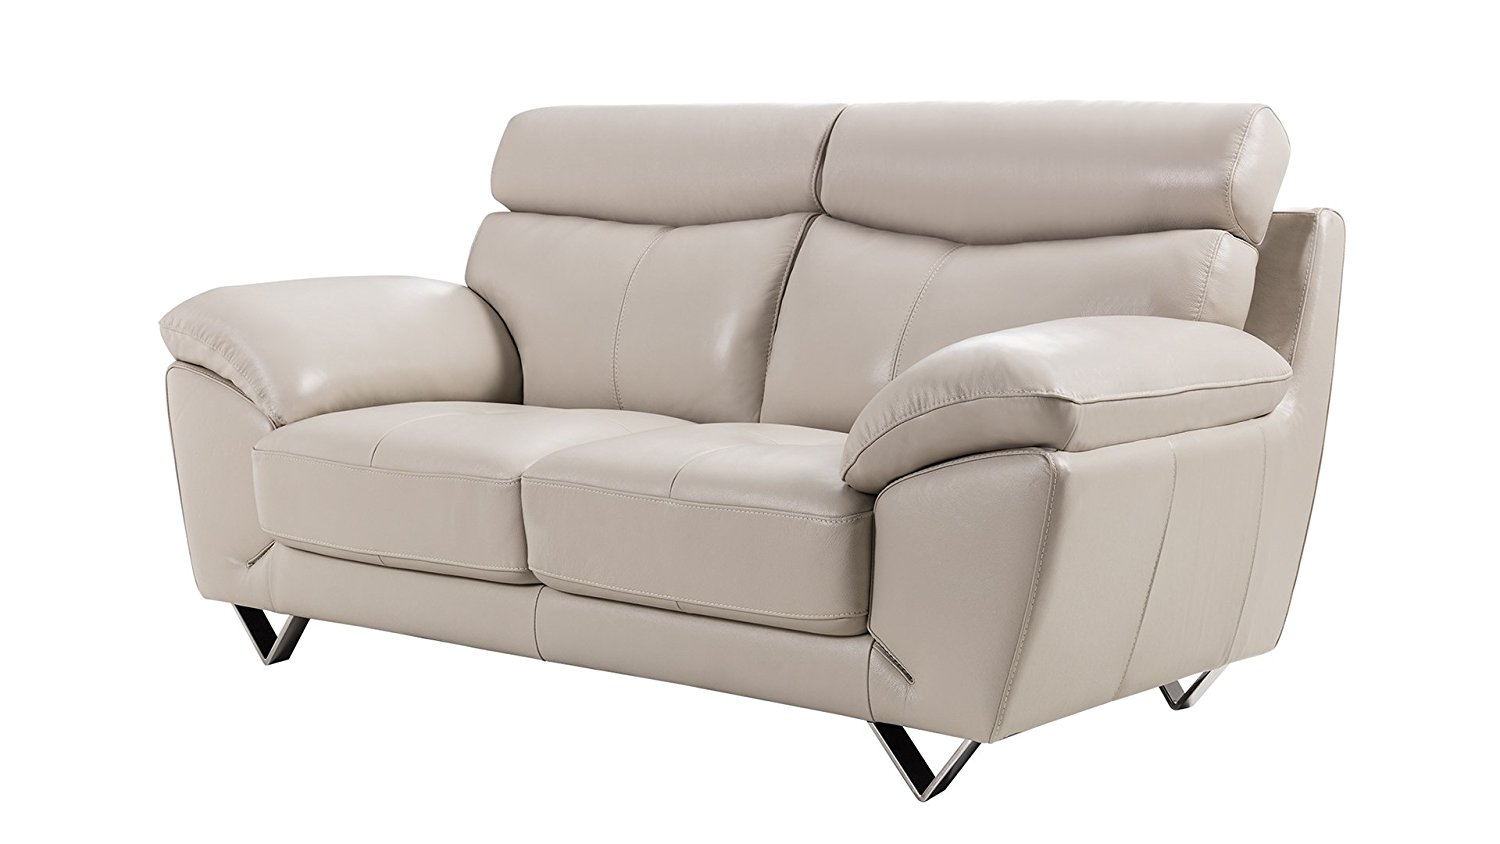 American Eagle Furniture Valencia Collection Italian Grain Leather Living Room Loveseat with Pillow Top Armrests, Light Gray